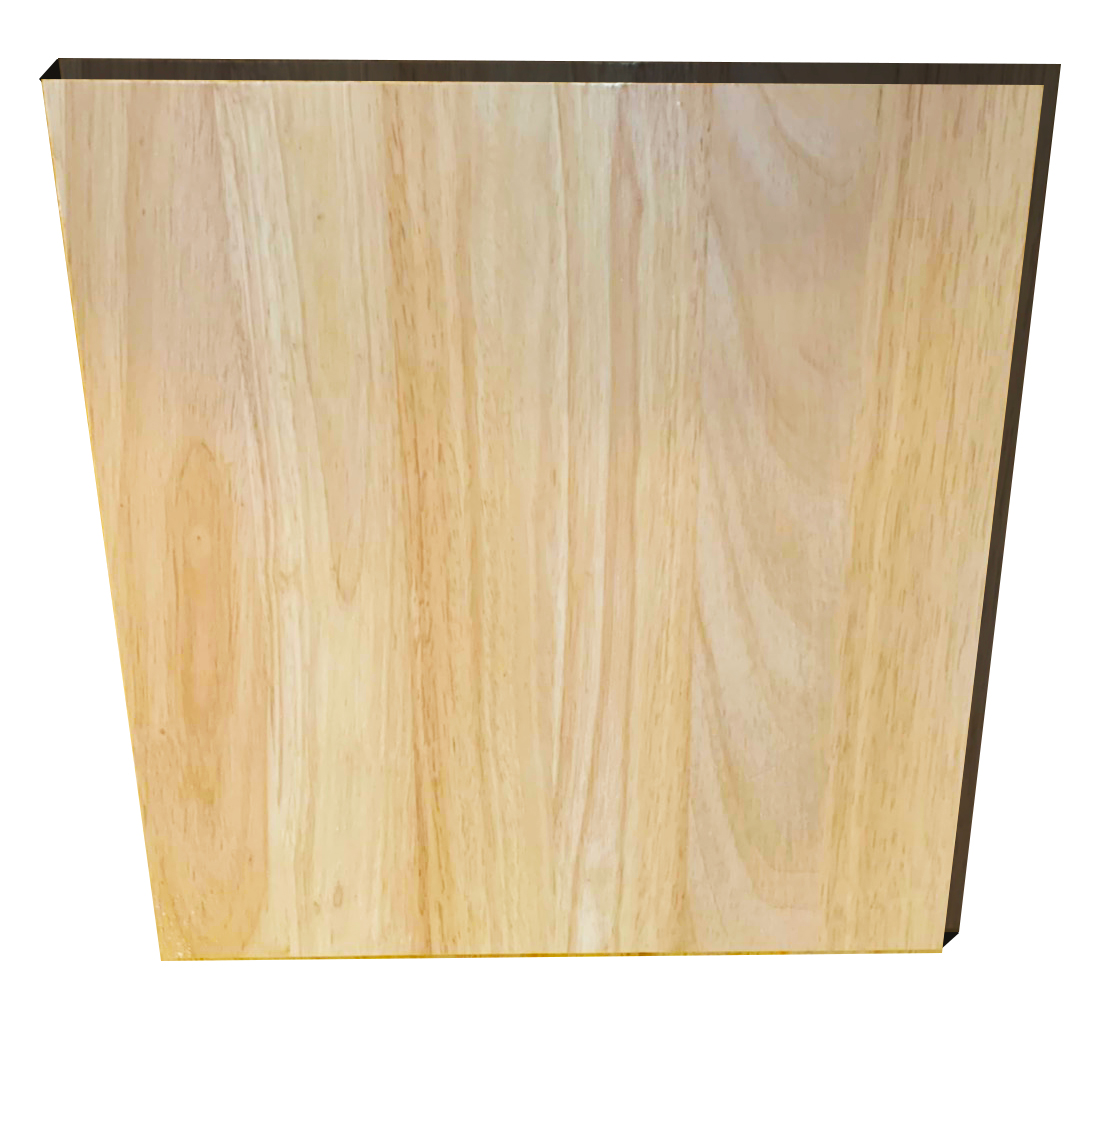 Solid wood SLB